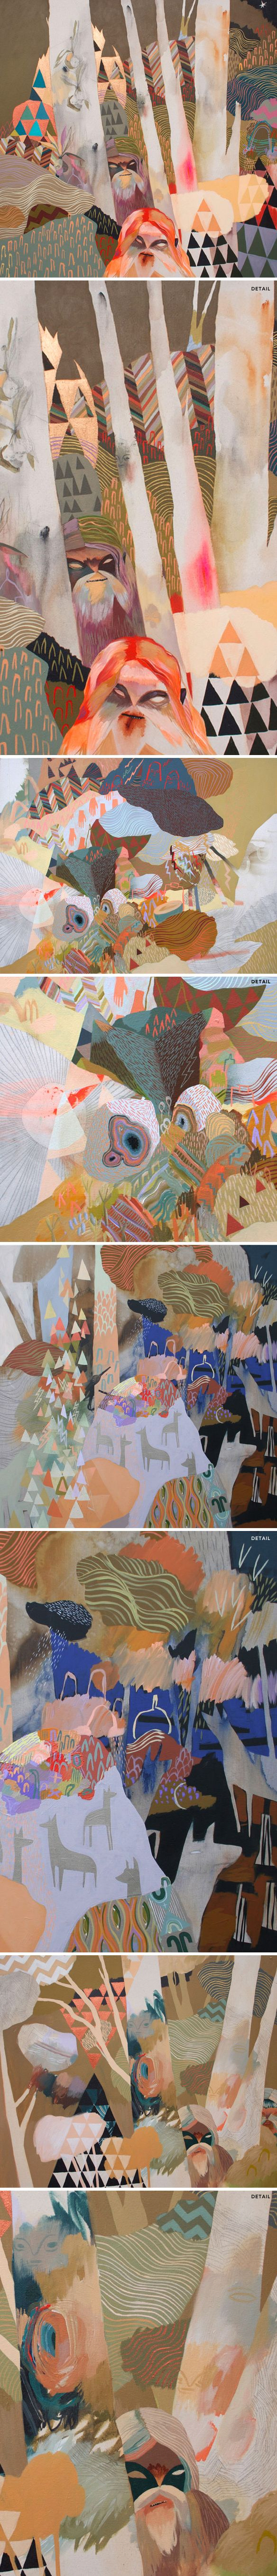 """""""Giants"""" a series by Meghan Hildebrand (acrylic on canvas)"""